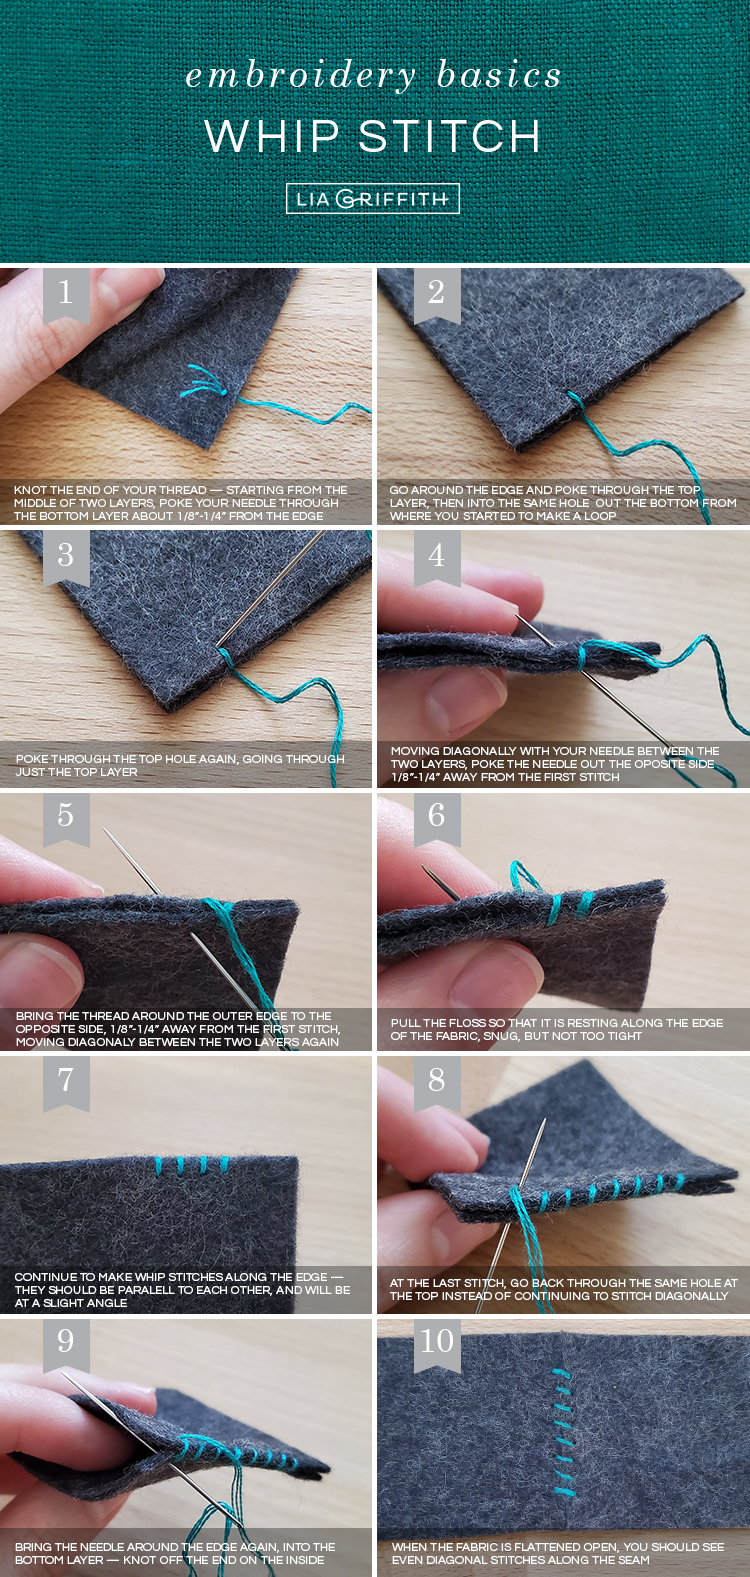 basic embroidery stitches: whip stitch tutorial